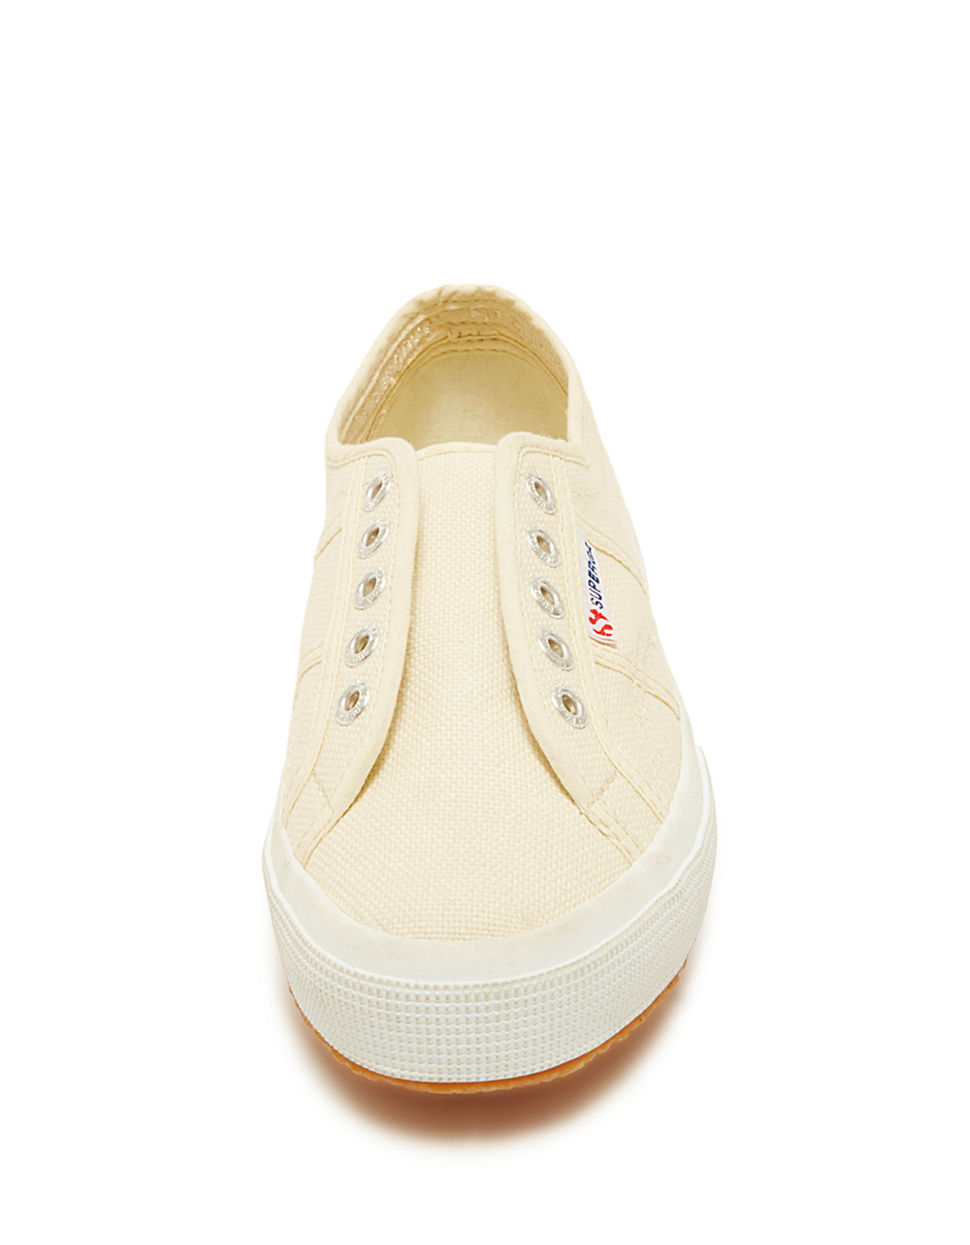 Superga Cotu Slip-on Tennis Shoes in Natural | Lyst